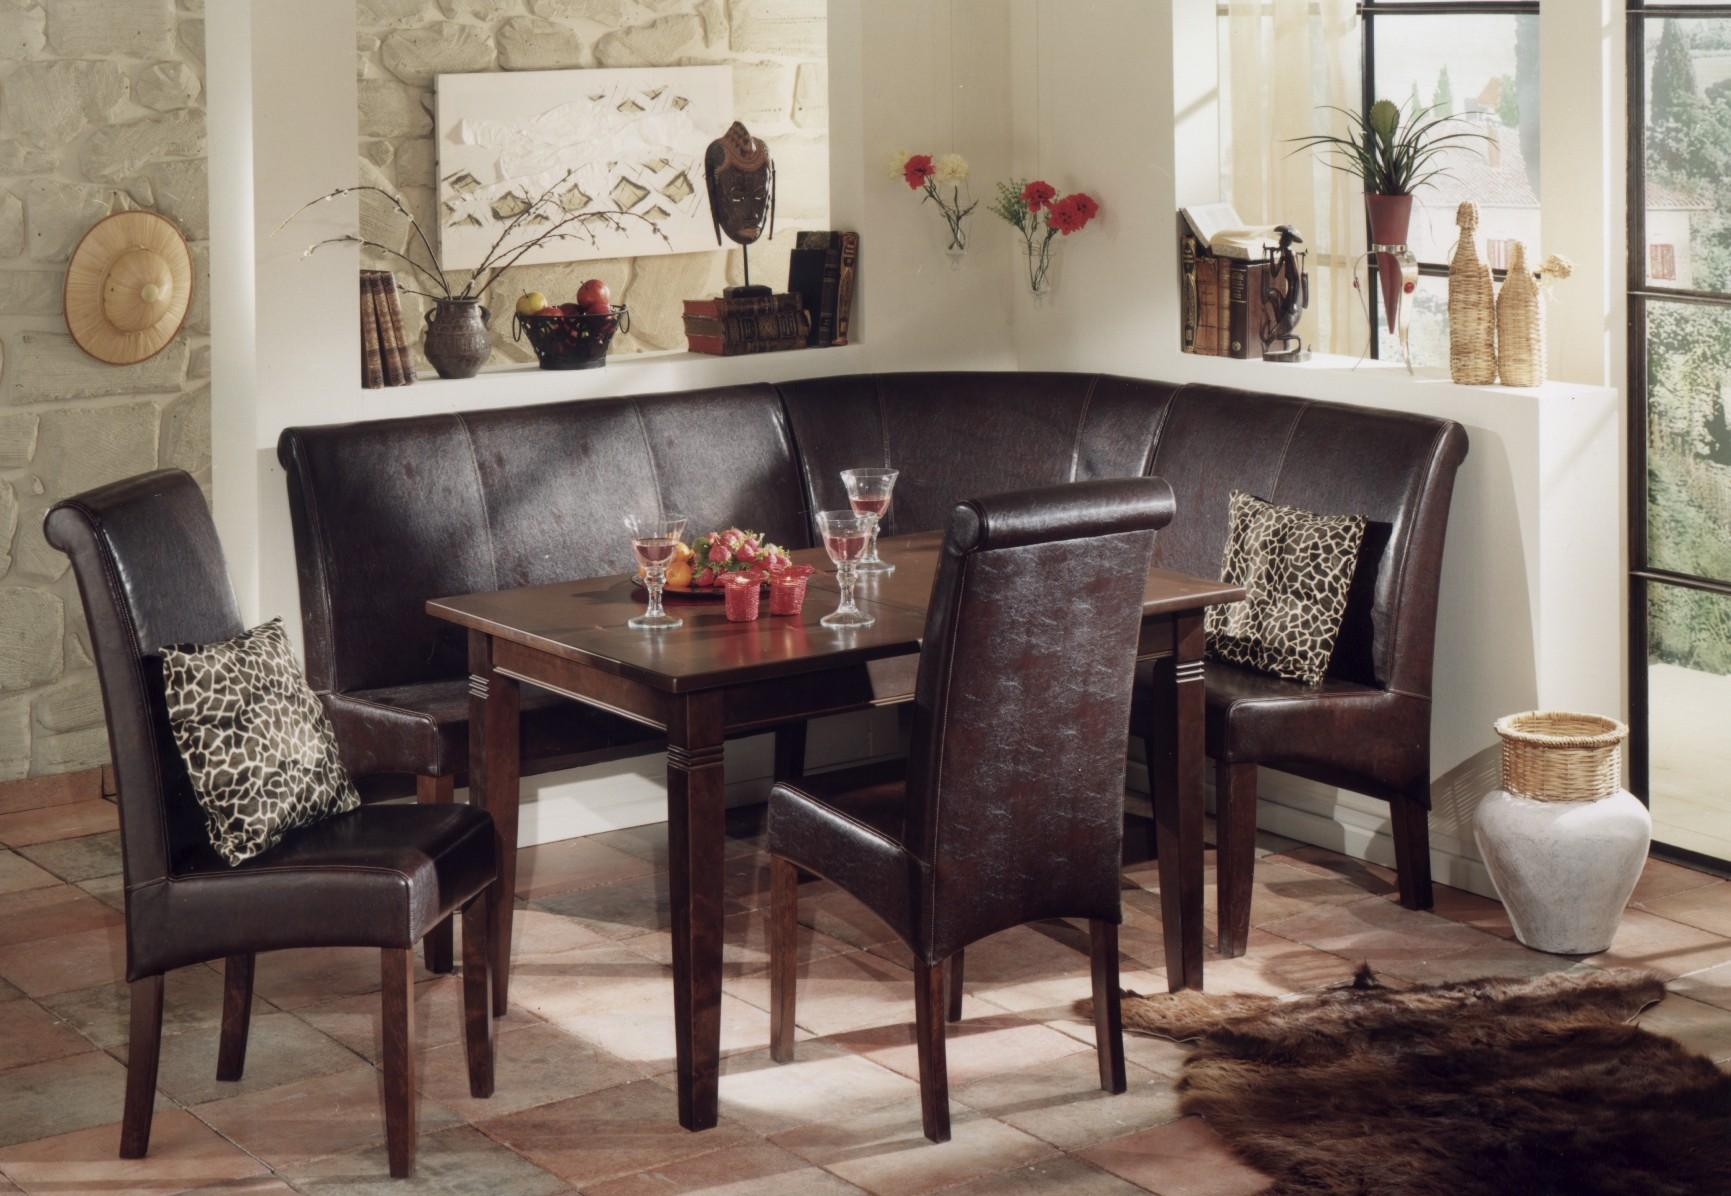 Encouraging Breakfast Nook Room Sets Bench Chairs Table Stone Wall Andtile Room Nook Sets Homesfeed Breakfast Nook Set Oak Breakfast Nook Settee houzz-03 Breakfast Nook Set